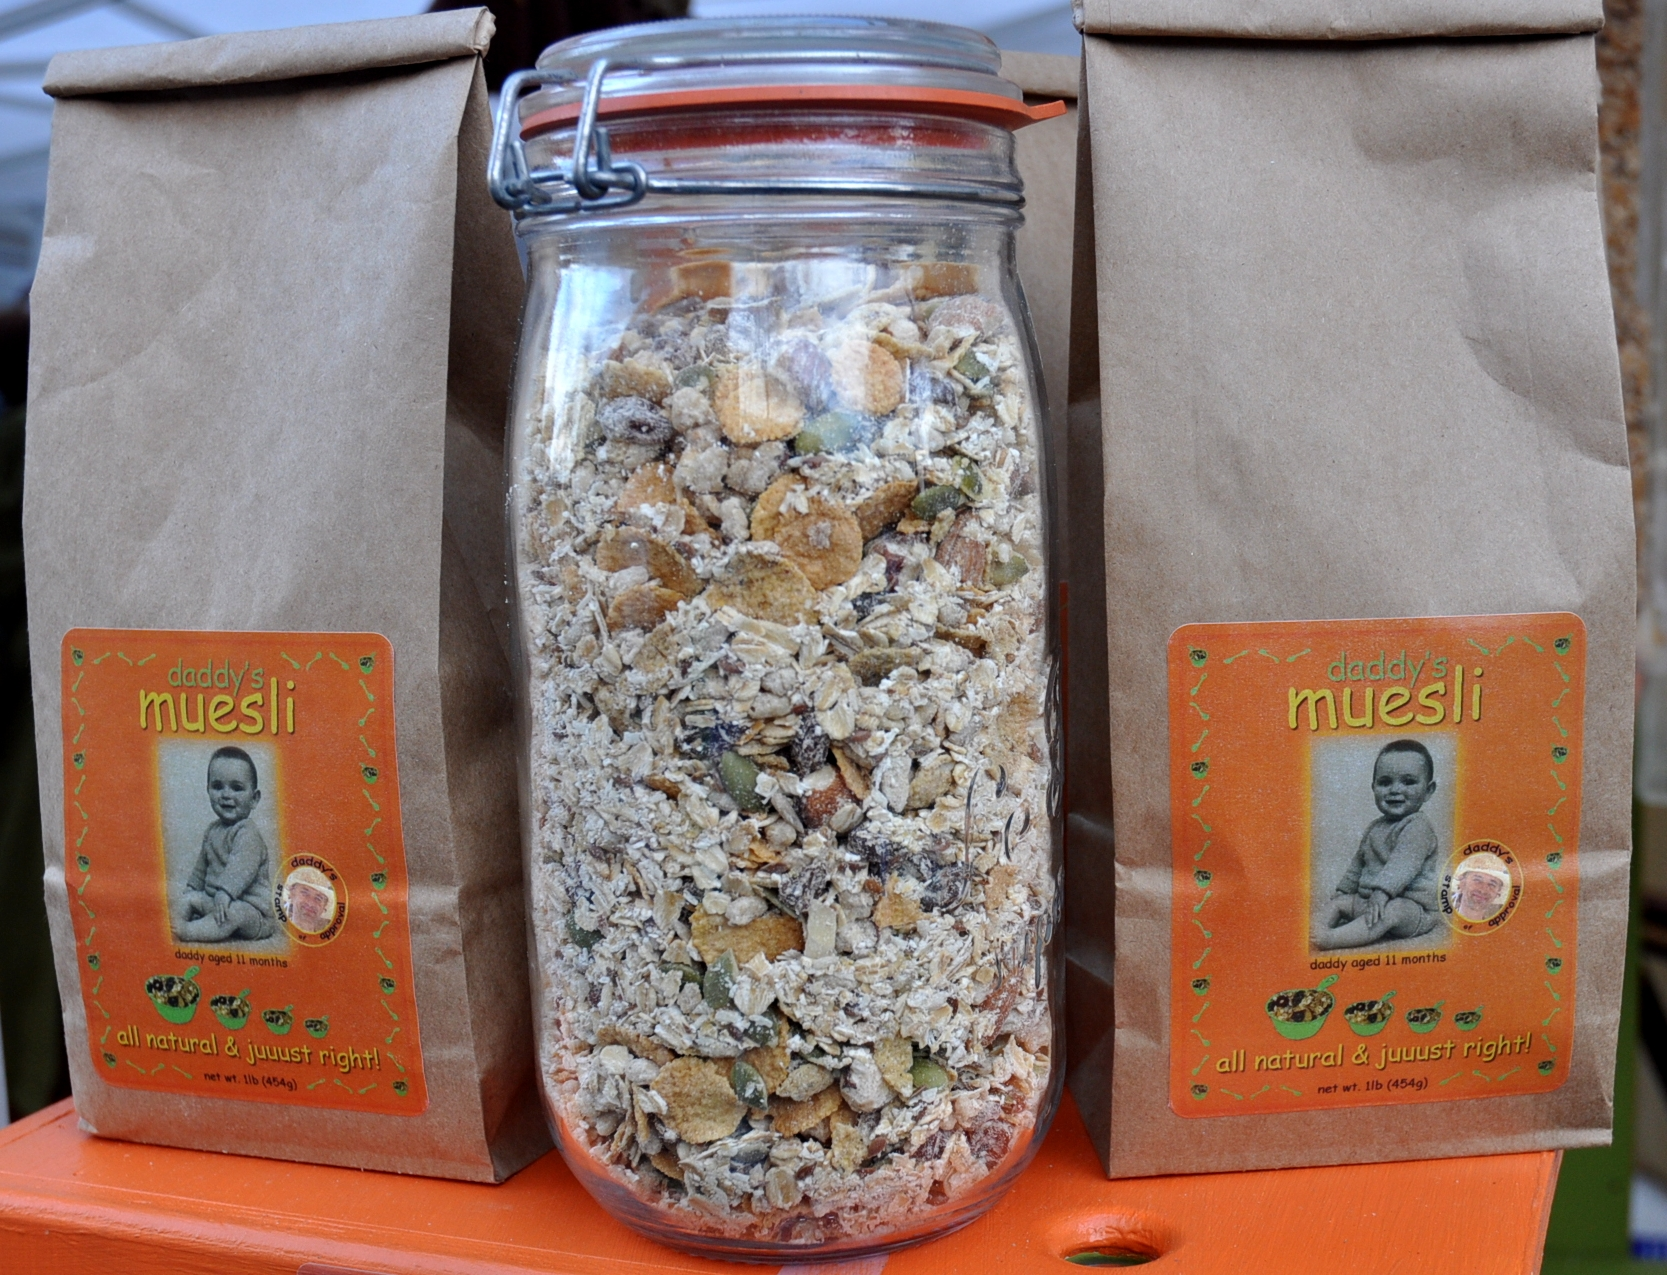 Daddy's Muesli. Photo copyright 2010 by Zachary D. Lyons.